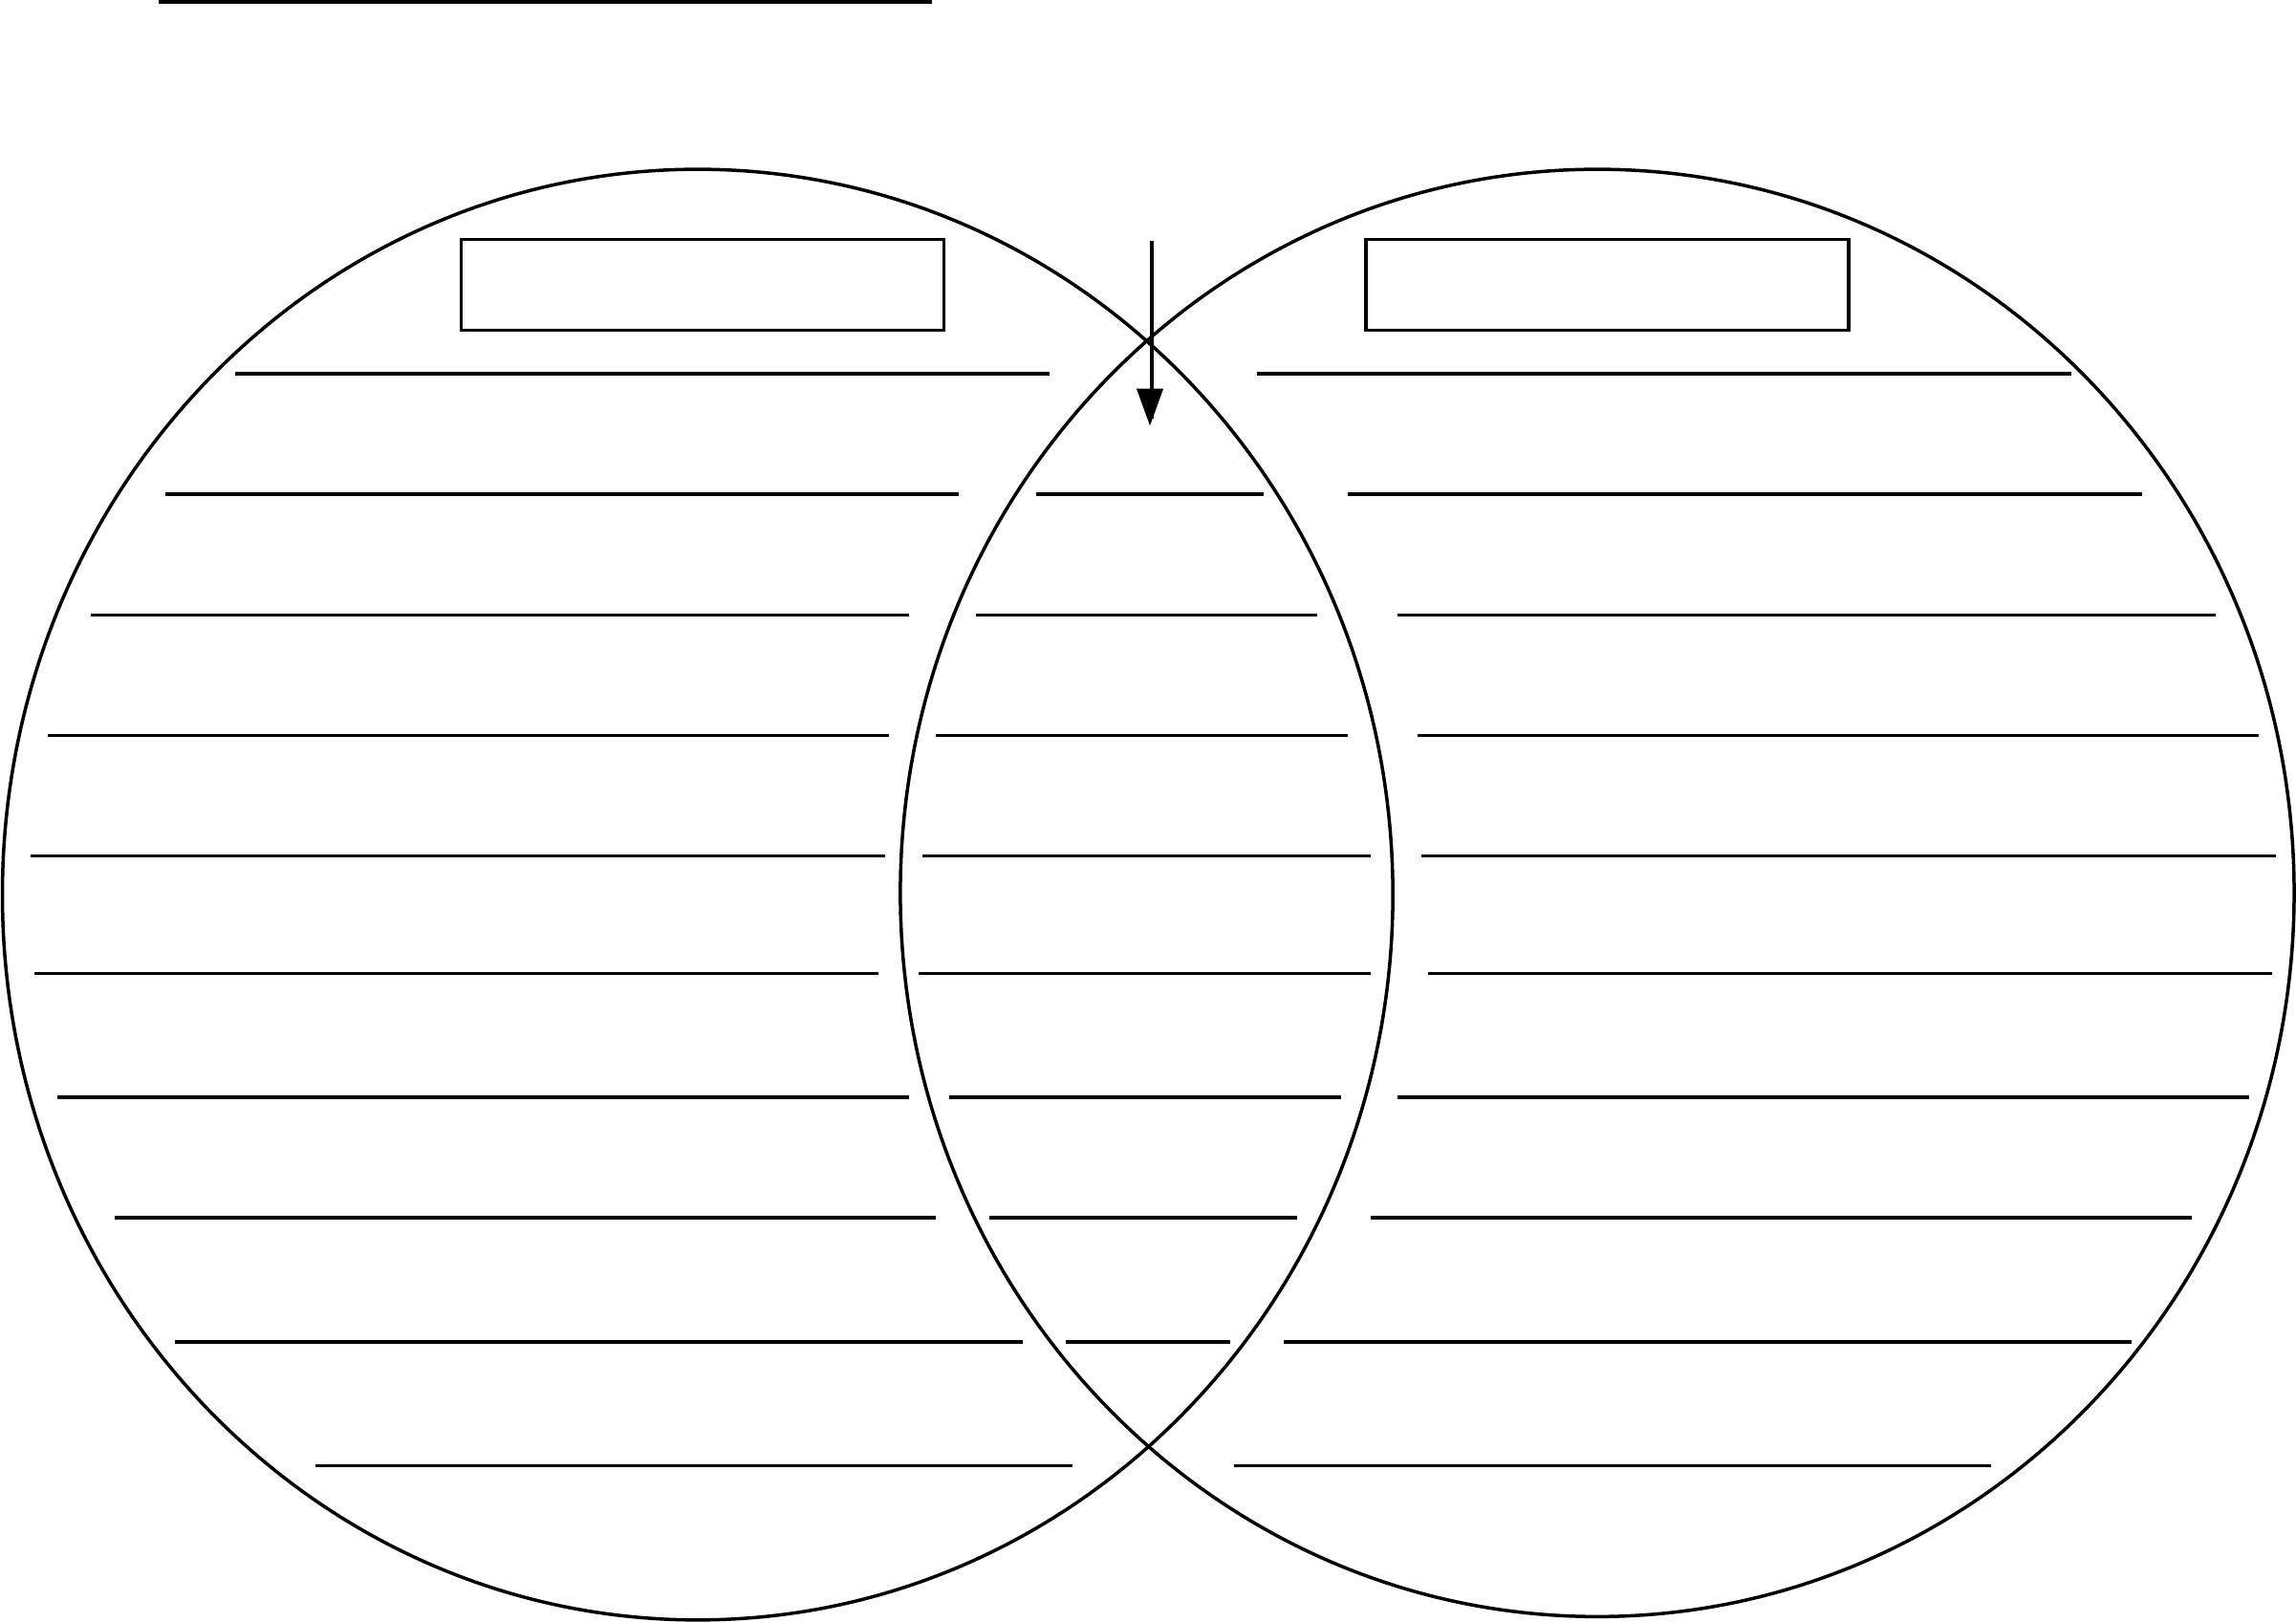 Venn diagram template character free download Diagram drawing software free download